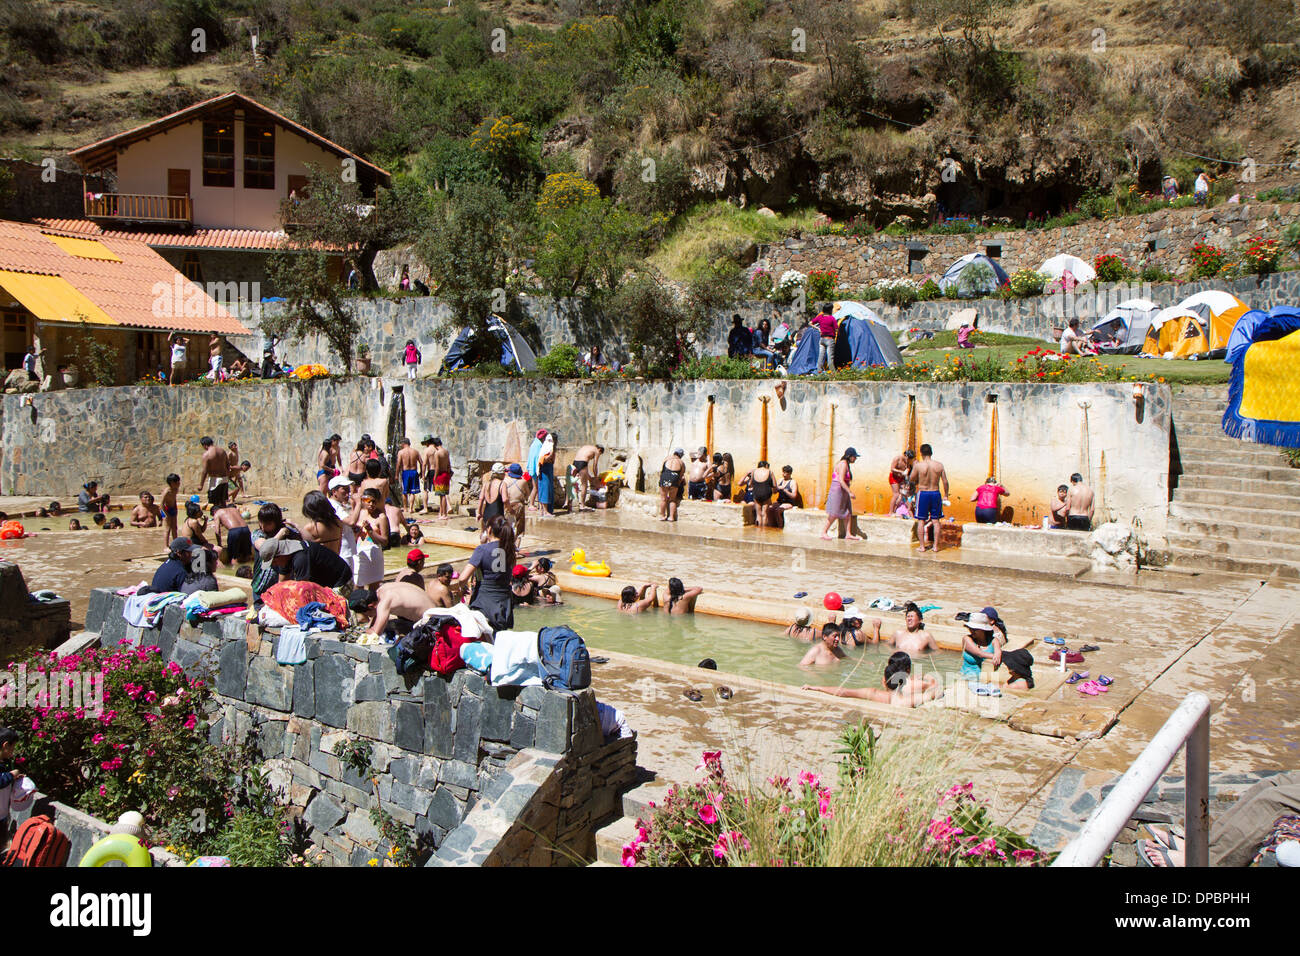 Hot Springs in Lares, Peru - Stock Image